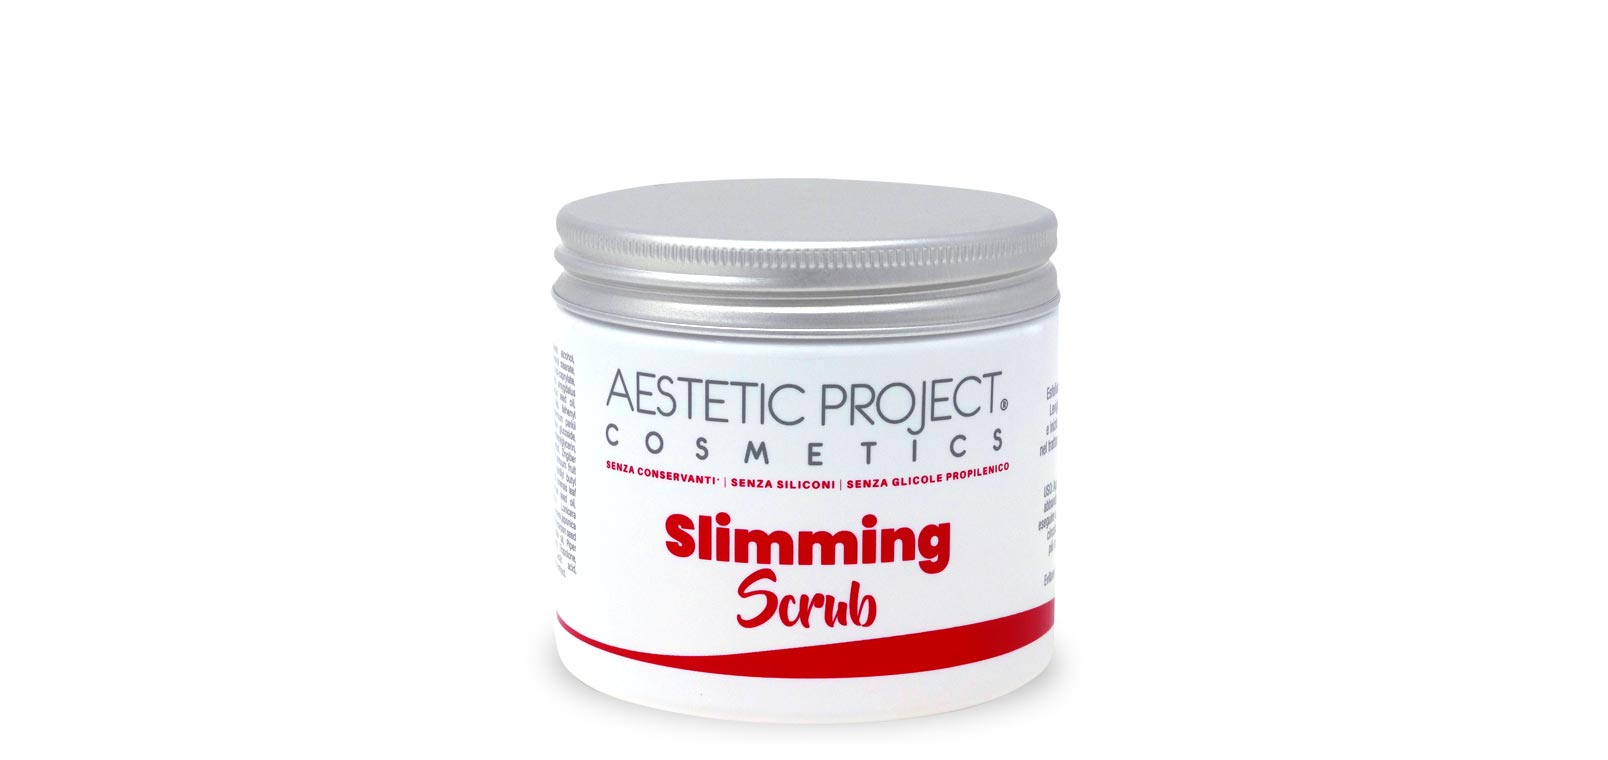 Slimming scrub Lato B Aestetic Project